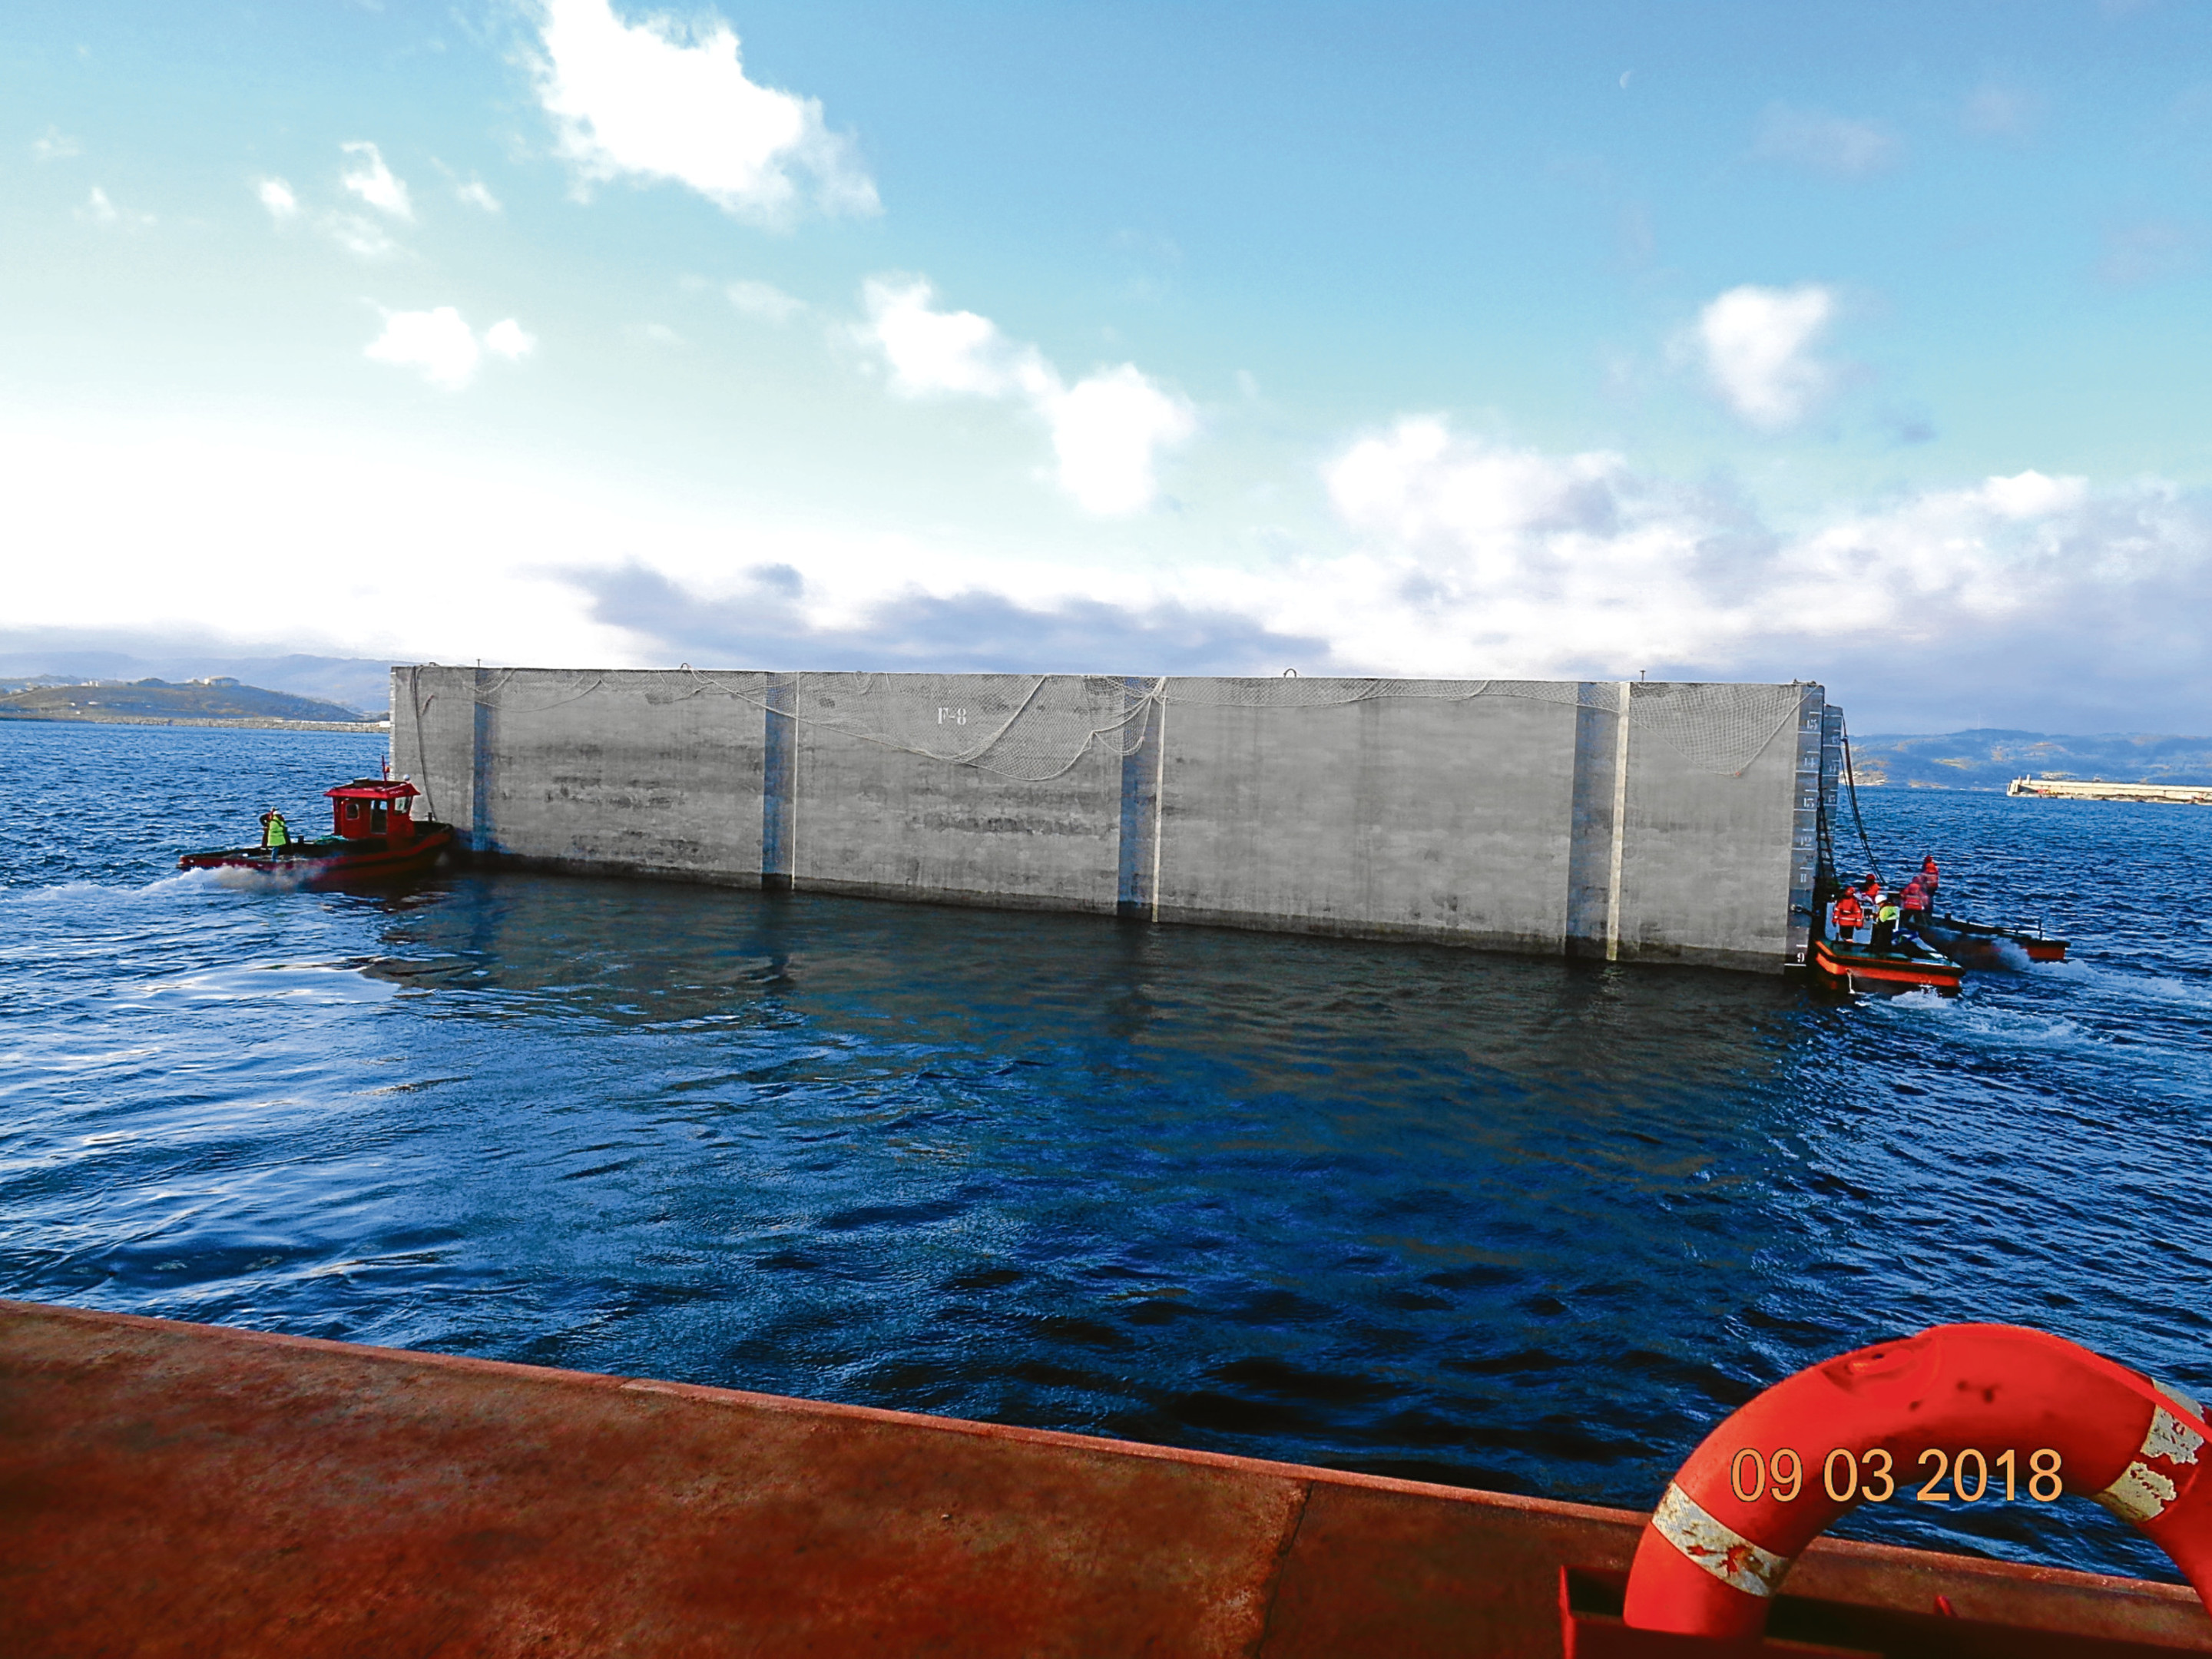 A caisson unit, being manufactured in Spain, will be floated into place at the harbour.